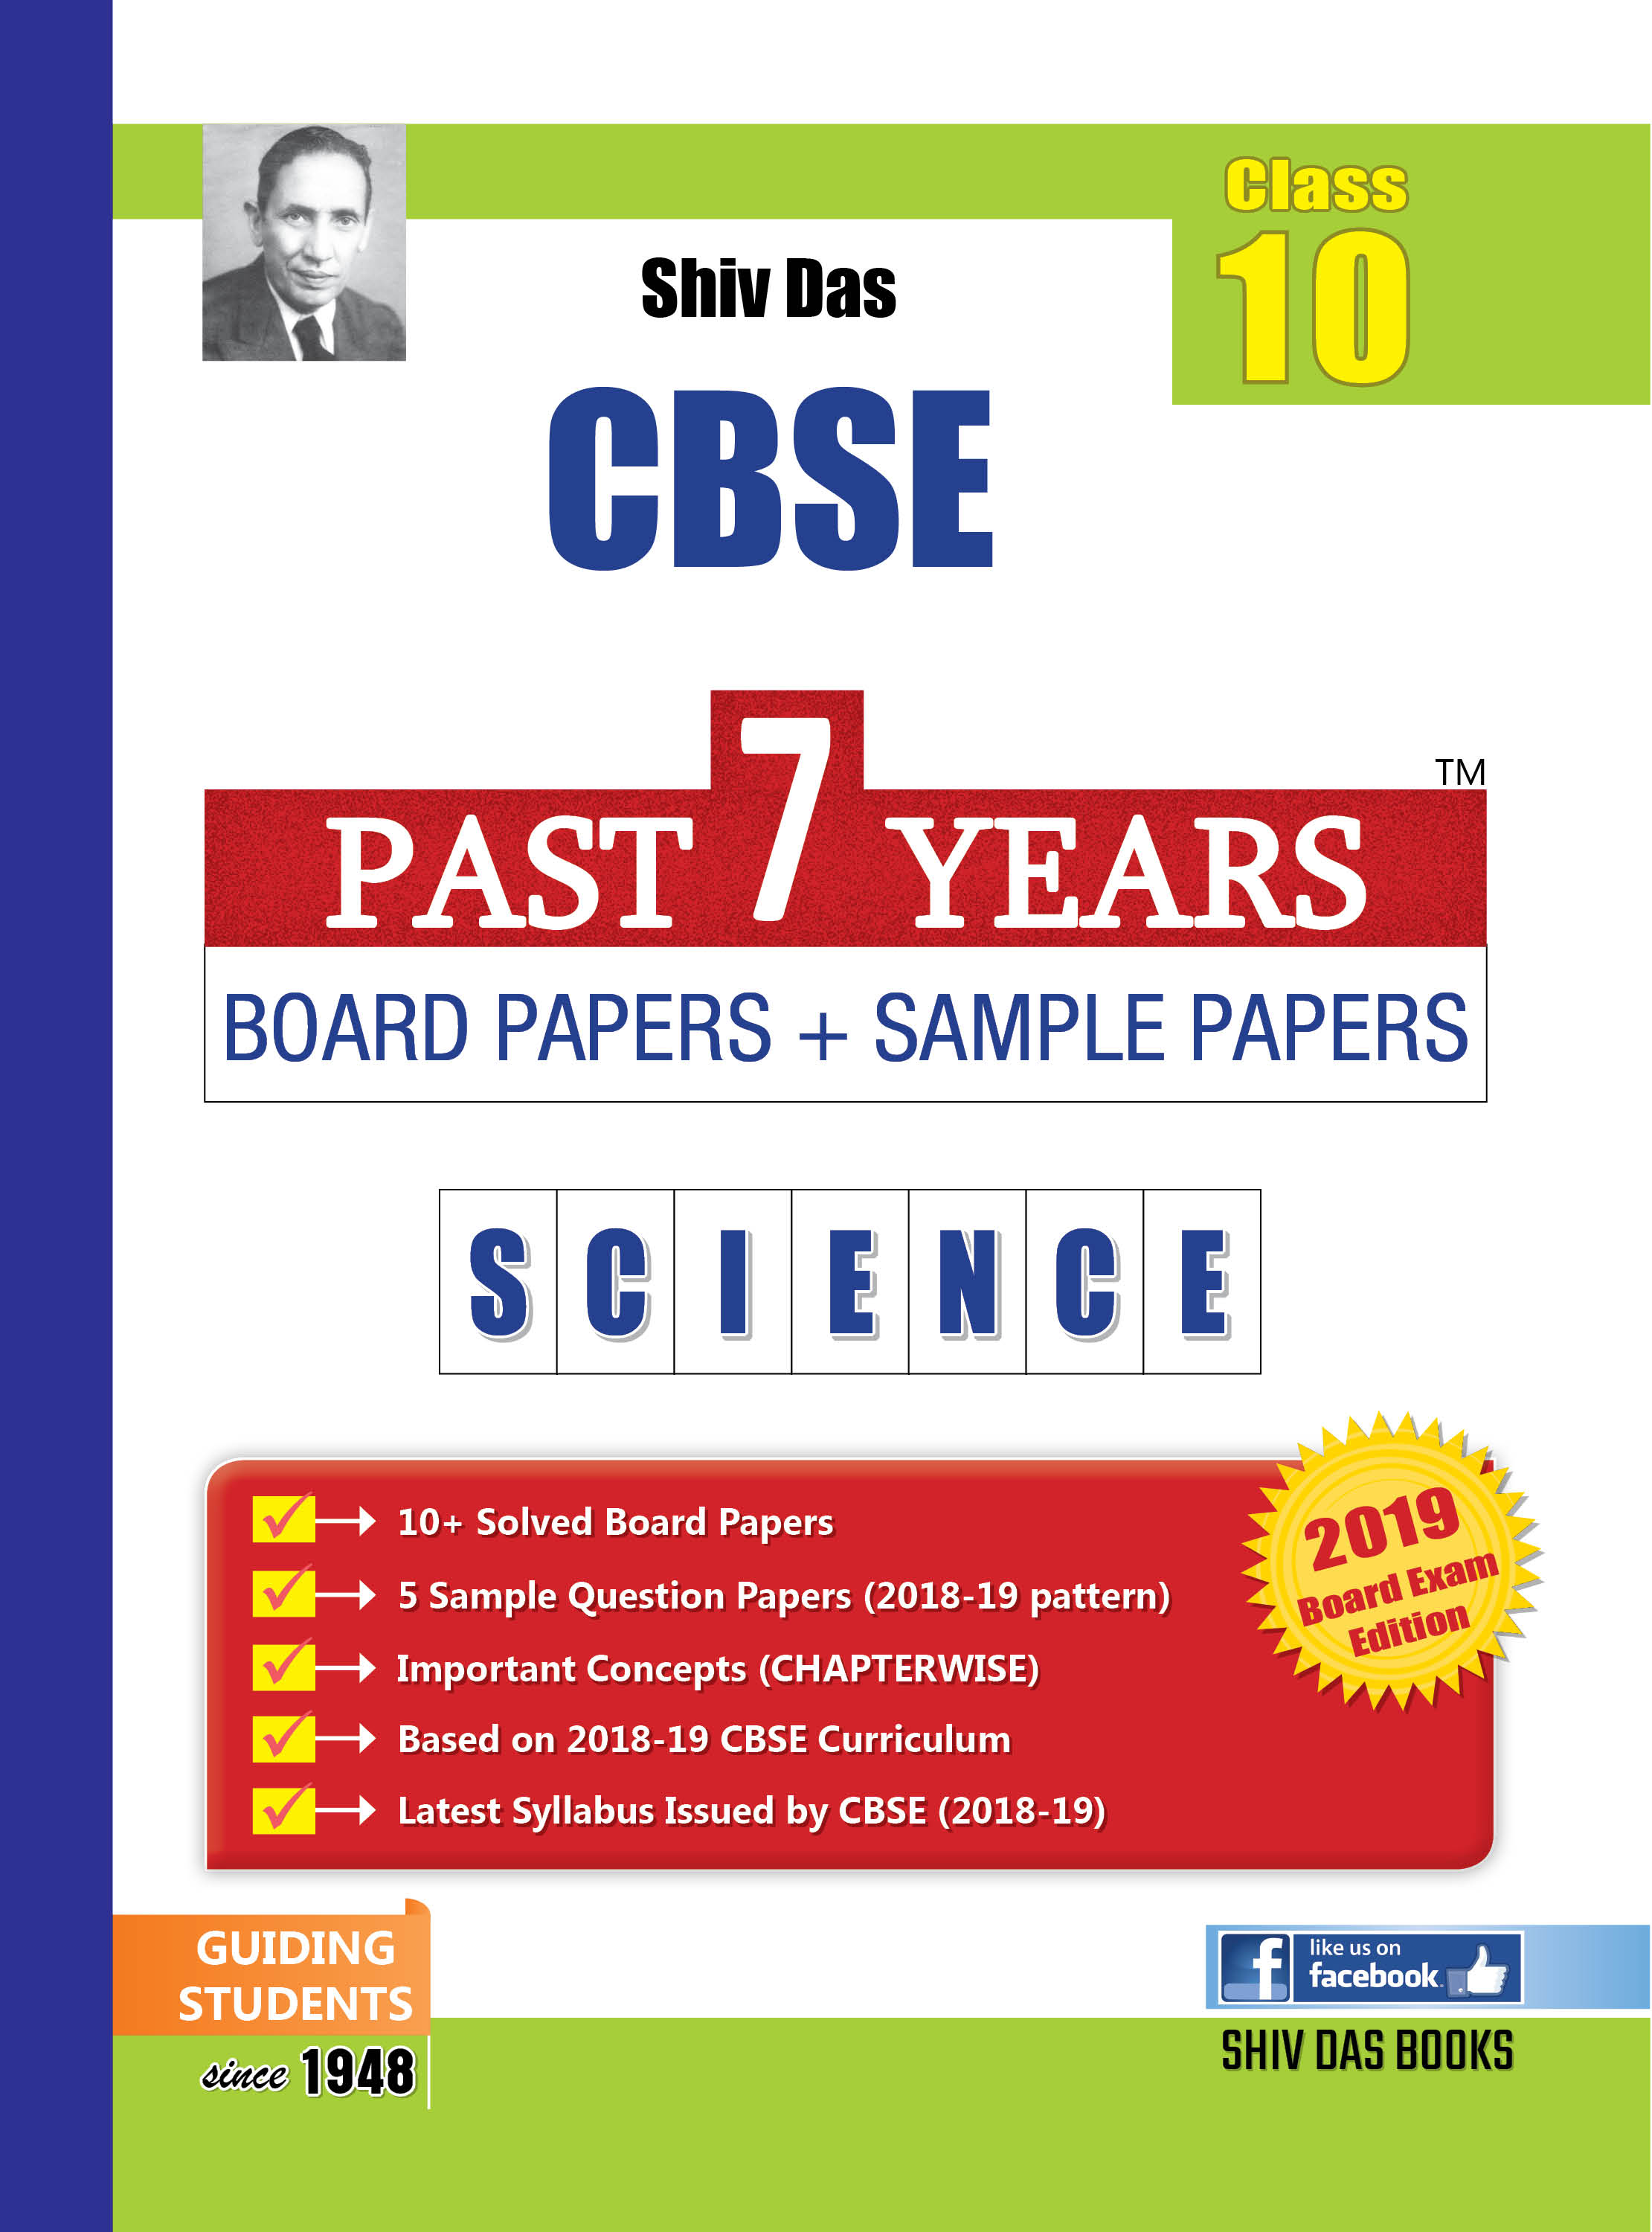 CBSE Past 7 Years Solved Board Papers+Sample Papers for Class 10 Science (2019 Board Exam Edition)